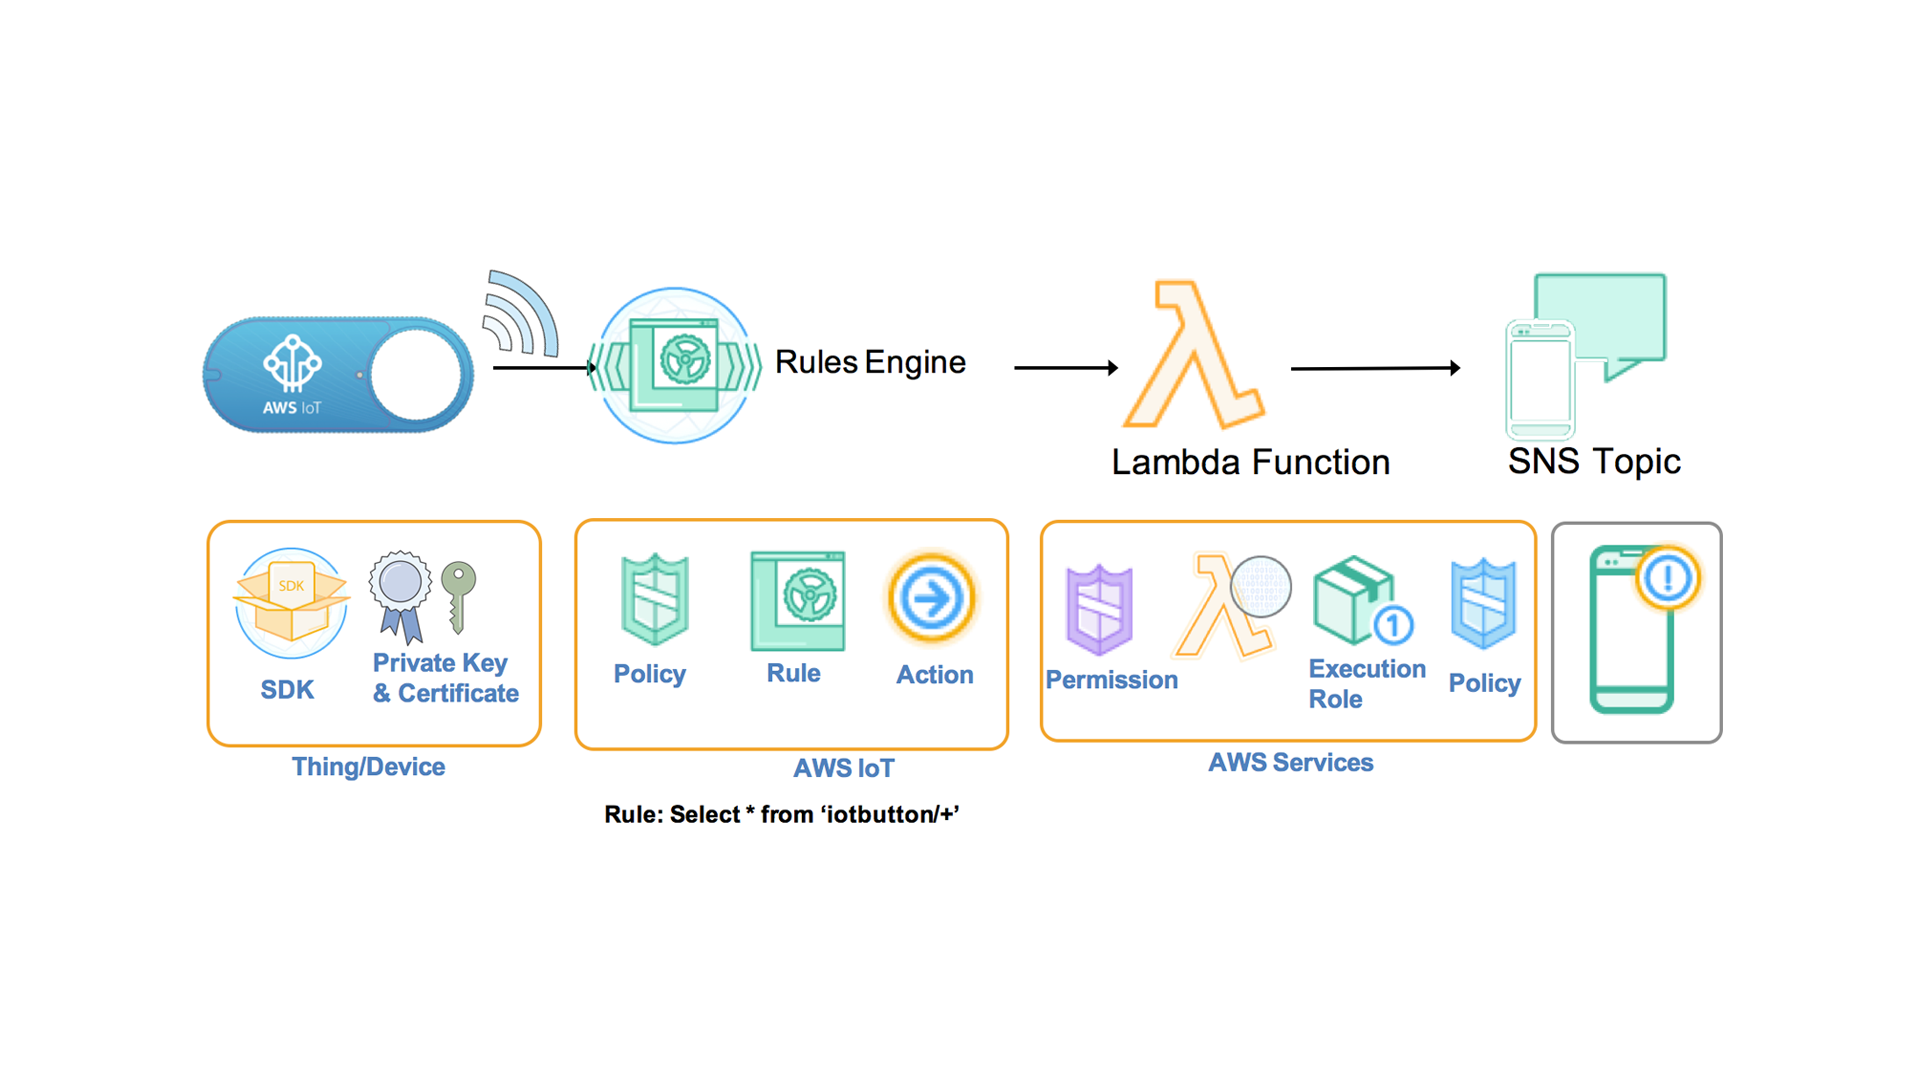 aws_iot_button_architecture_1920x1080